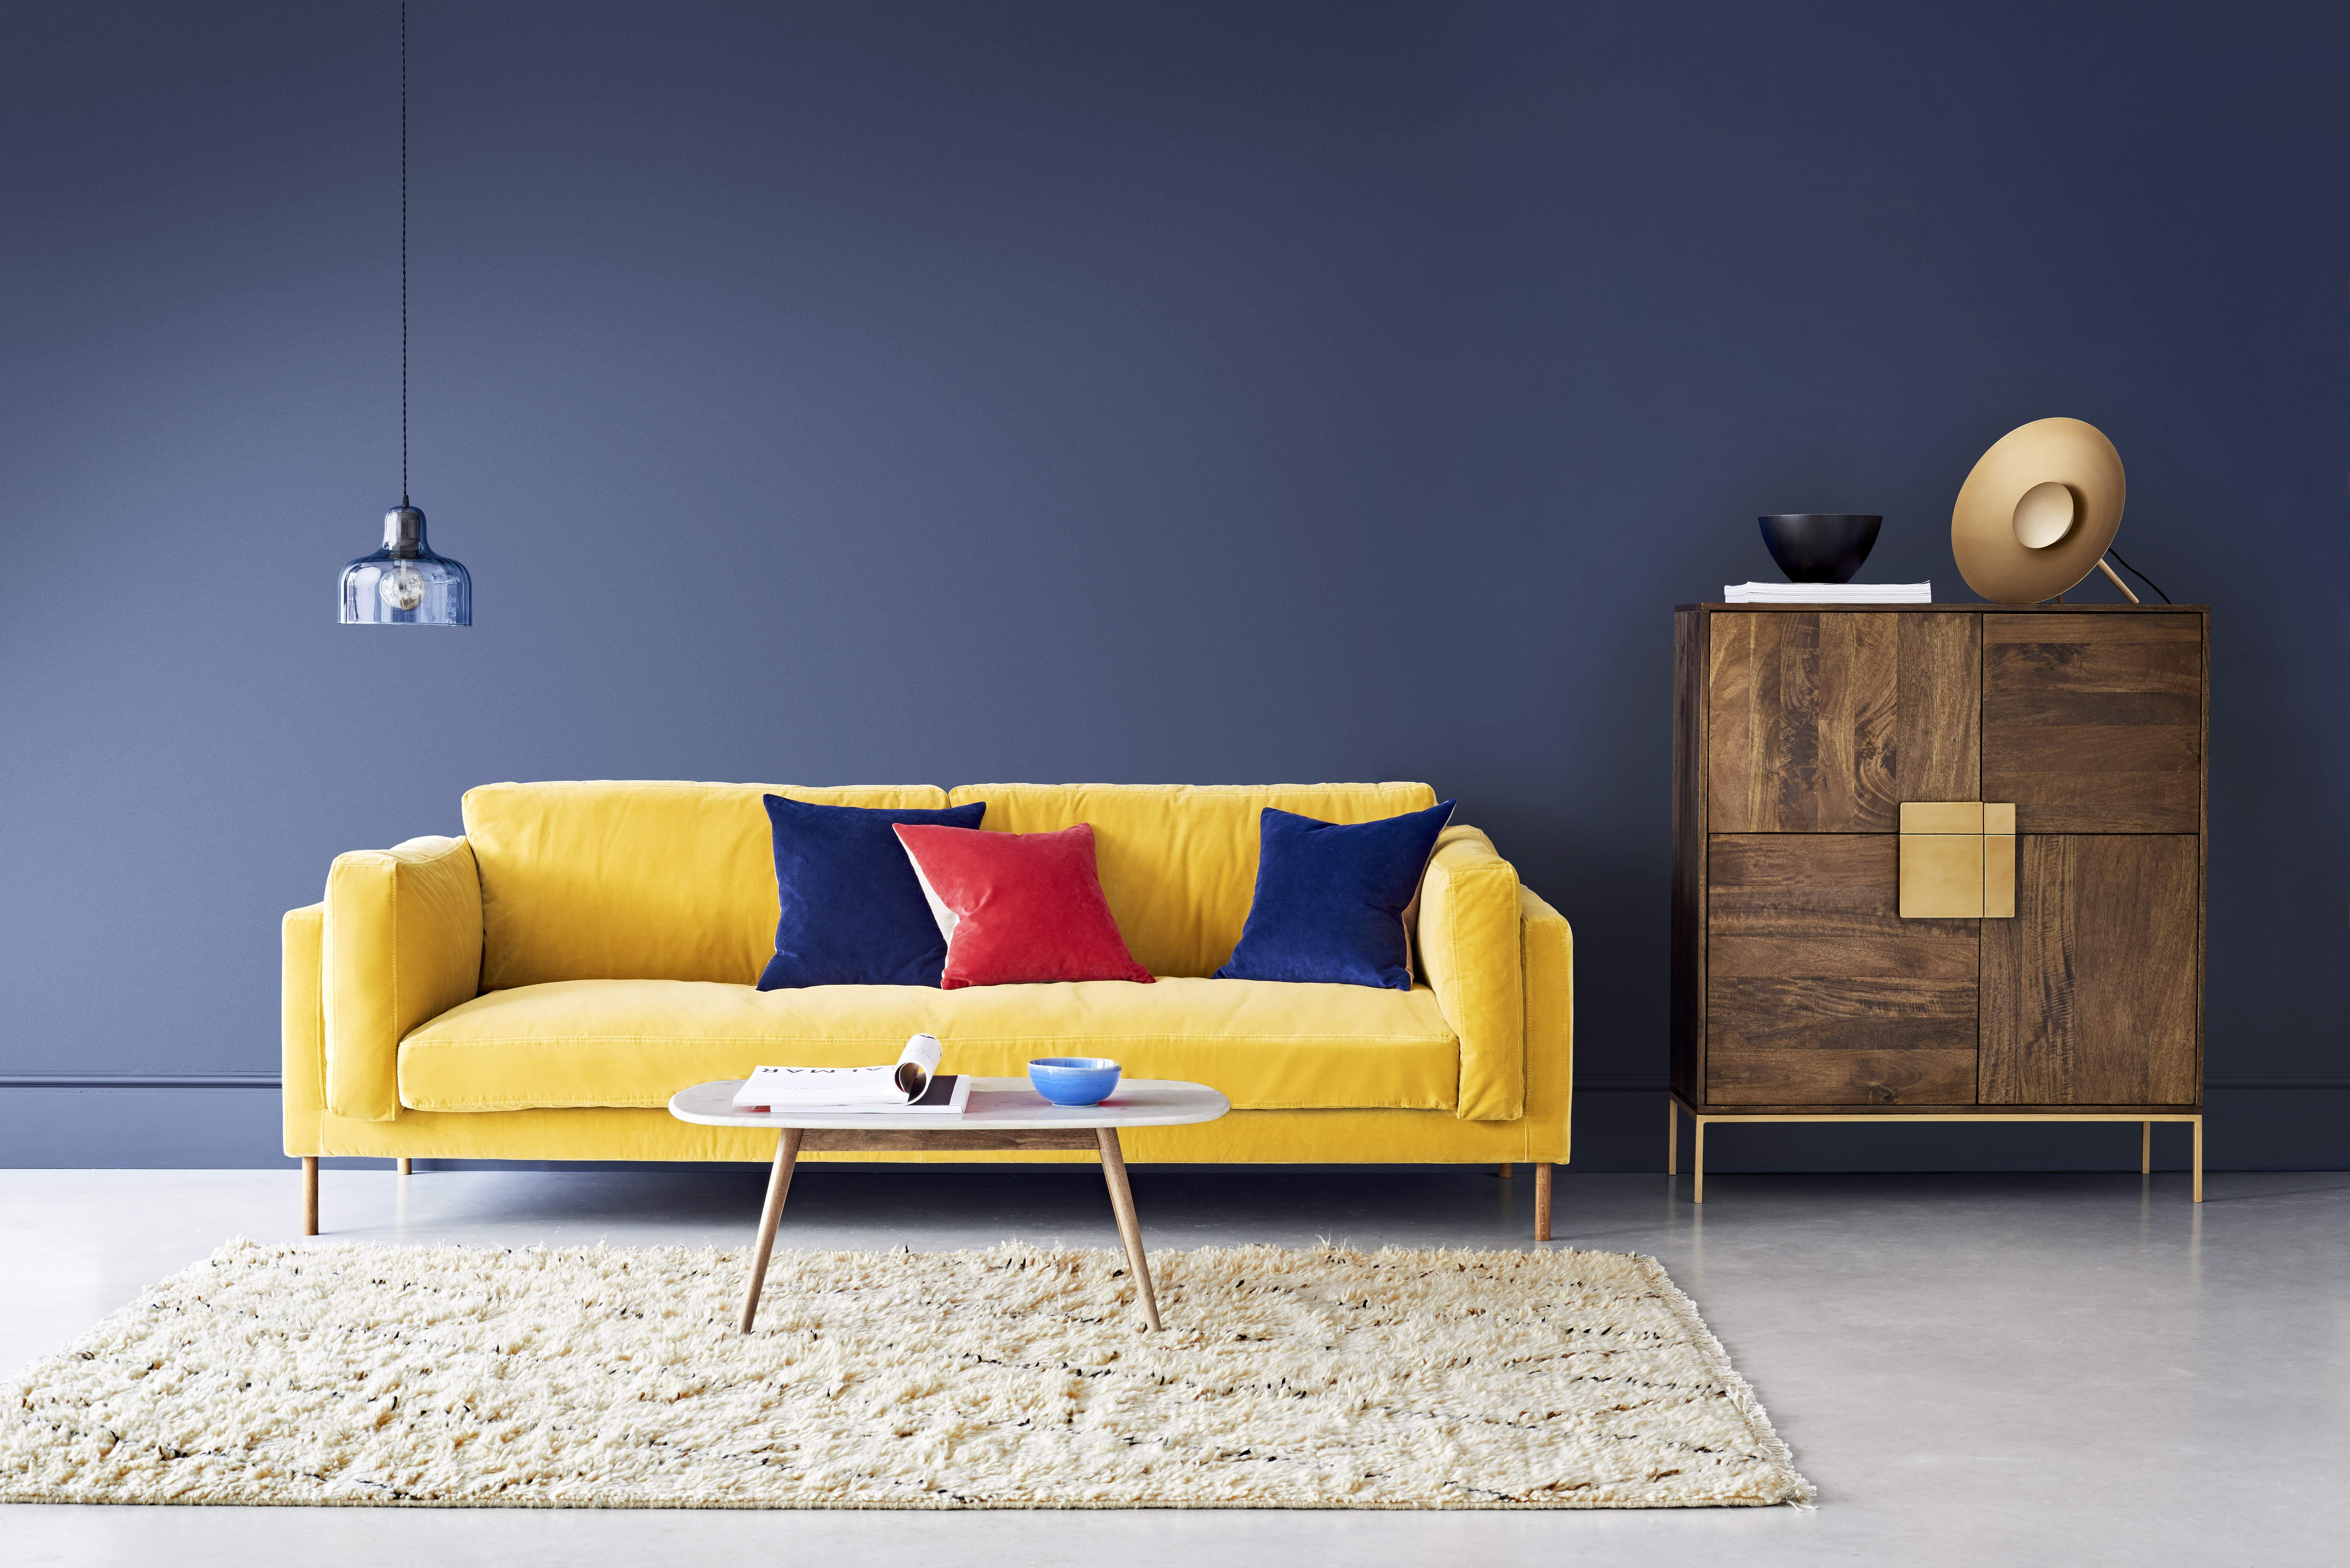 From Bright Modern Sofas And Statement Cushions To High Quality Finished Wooden Cabinets Ious Storage Units The New Swoon At Debenhams Furniture